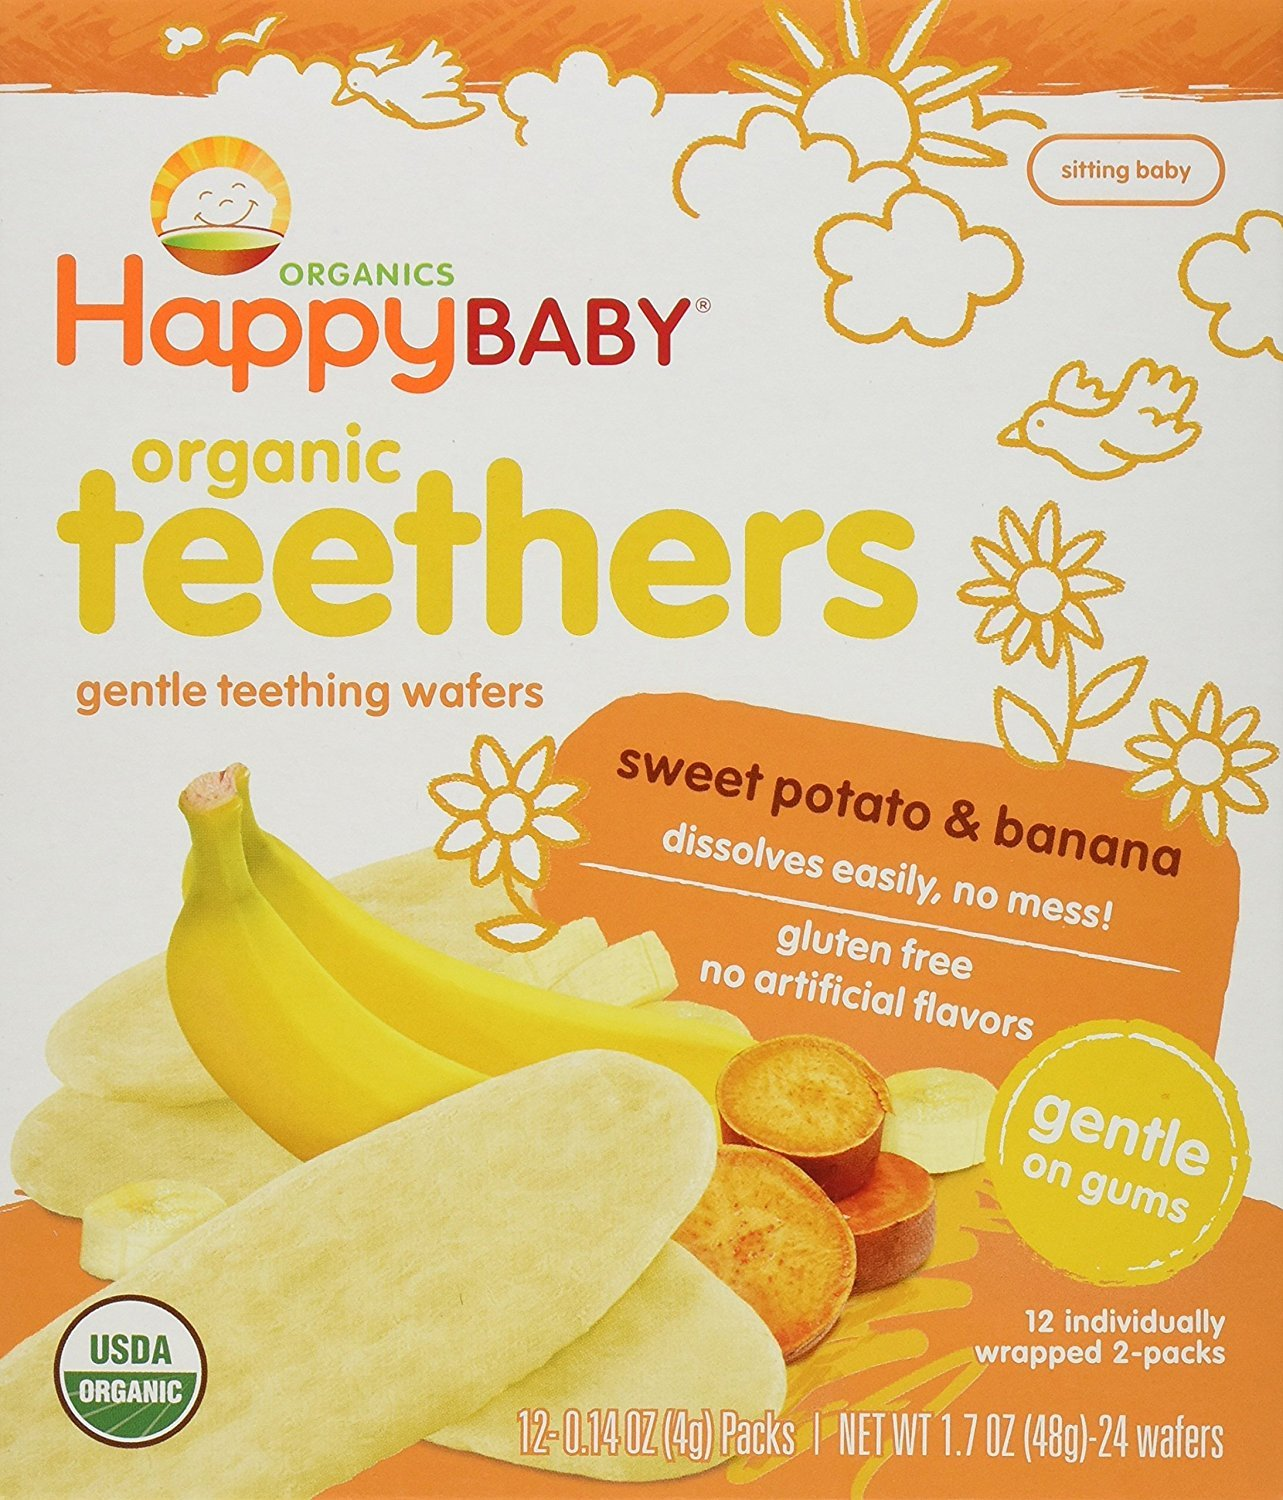 Happy Baby Gentle Teethers Organic Teething Wafers Banana Sweet Potato, 0.14 Ounce Packets (Box of 12) Soothing Rice Cookies for Teething Babies Dissolves Easily Gluten Free No Artificial Flavor by Happy Baby